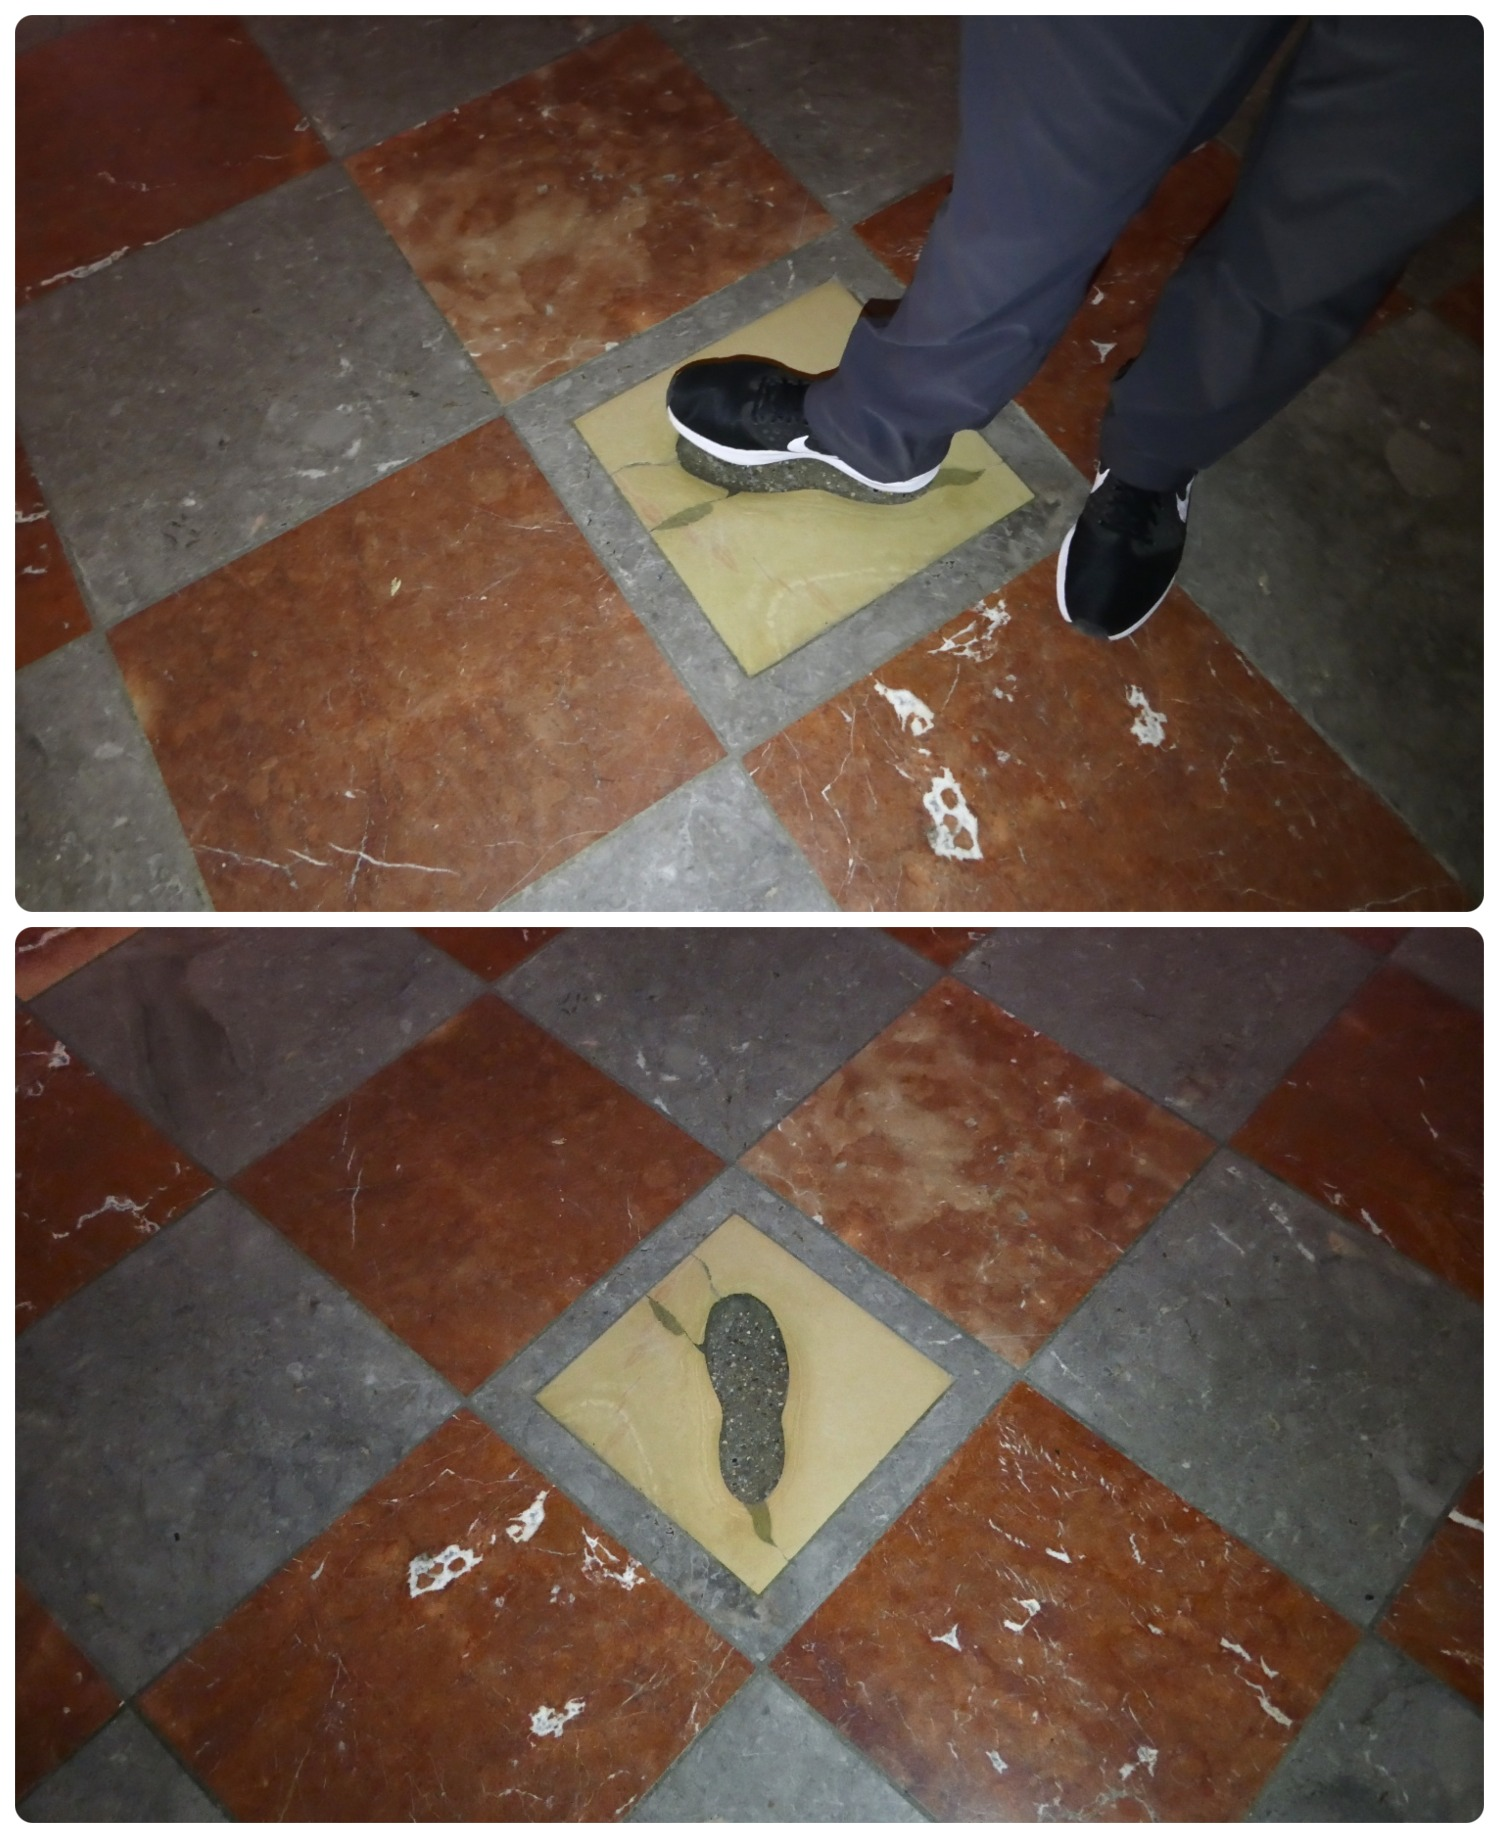 Frauenkirche & the Devil's Footprint (Der Teufels) in Munich, Germany. Head to the back of the cathedral to find the alleged devil's foot print.